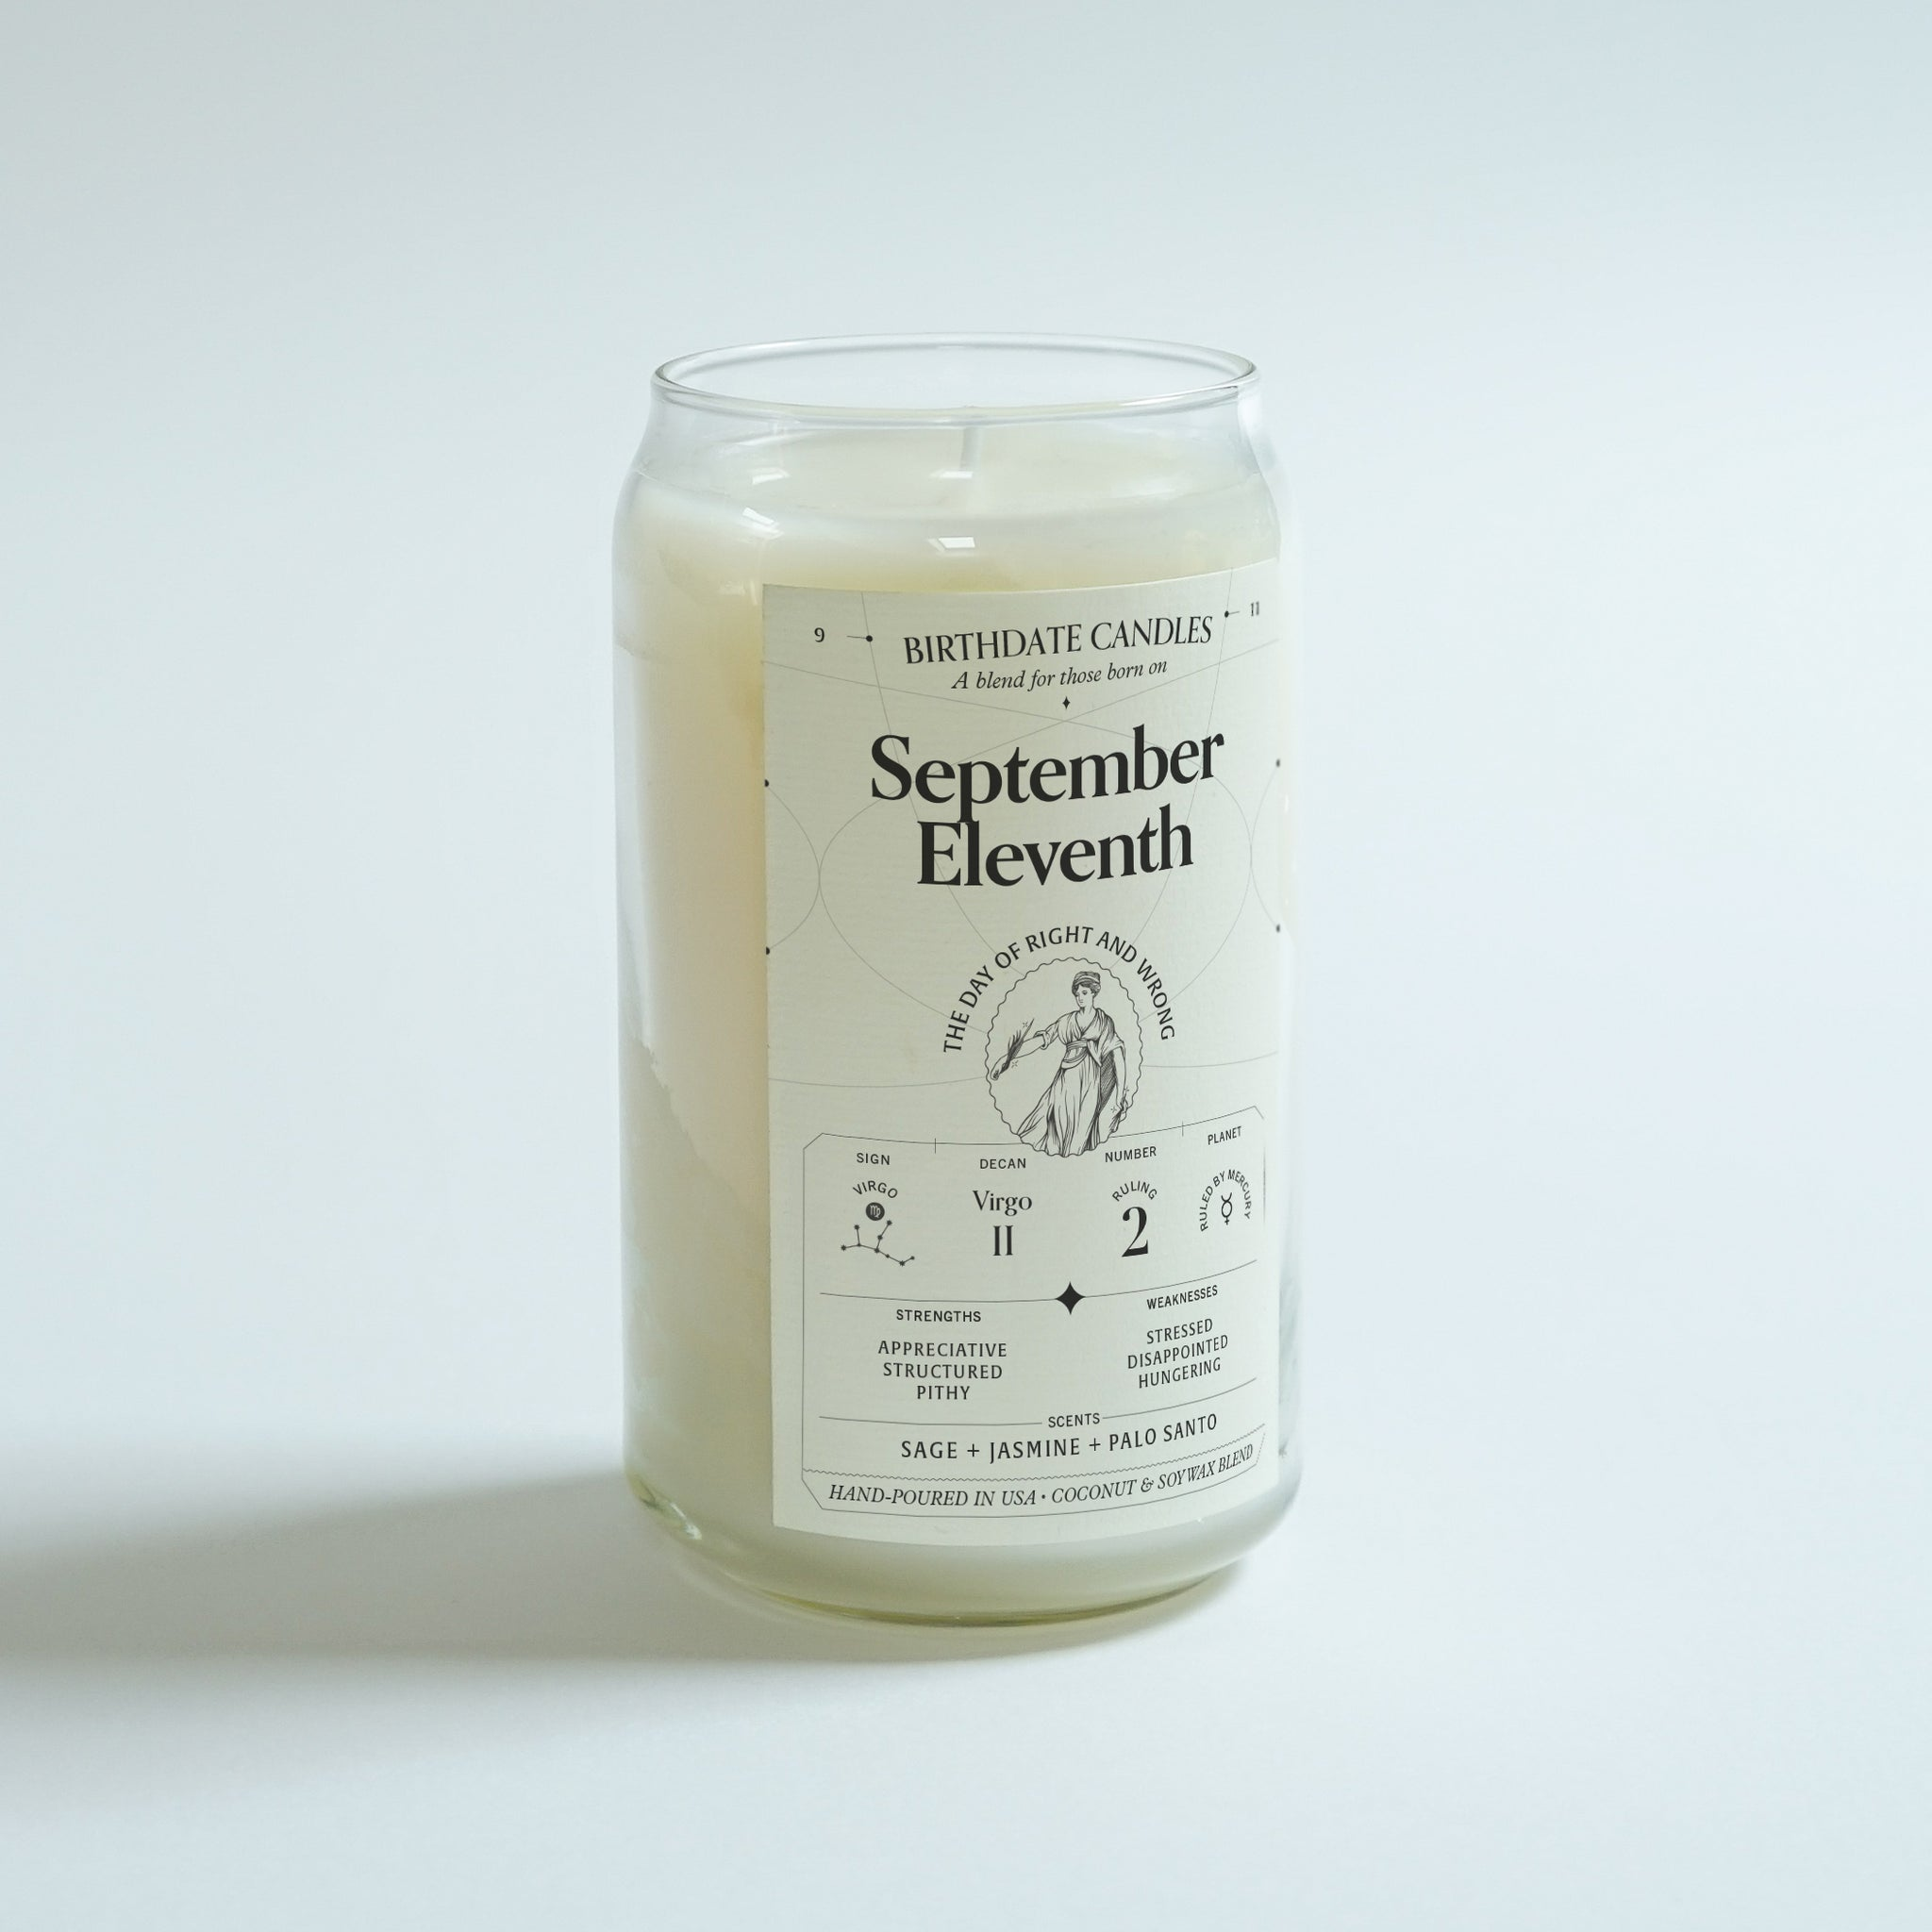 The September Eleventh Birthday Candle